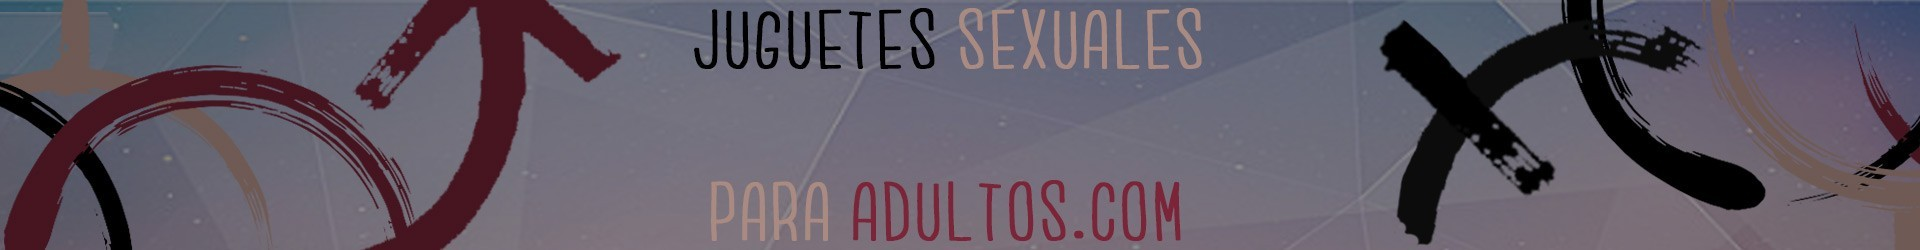 Chock Therapy - Juguetes Sexuales para Adultos Sex Shop